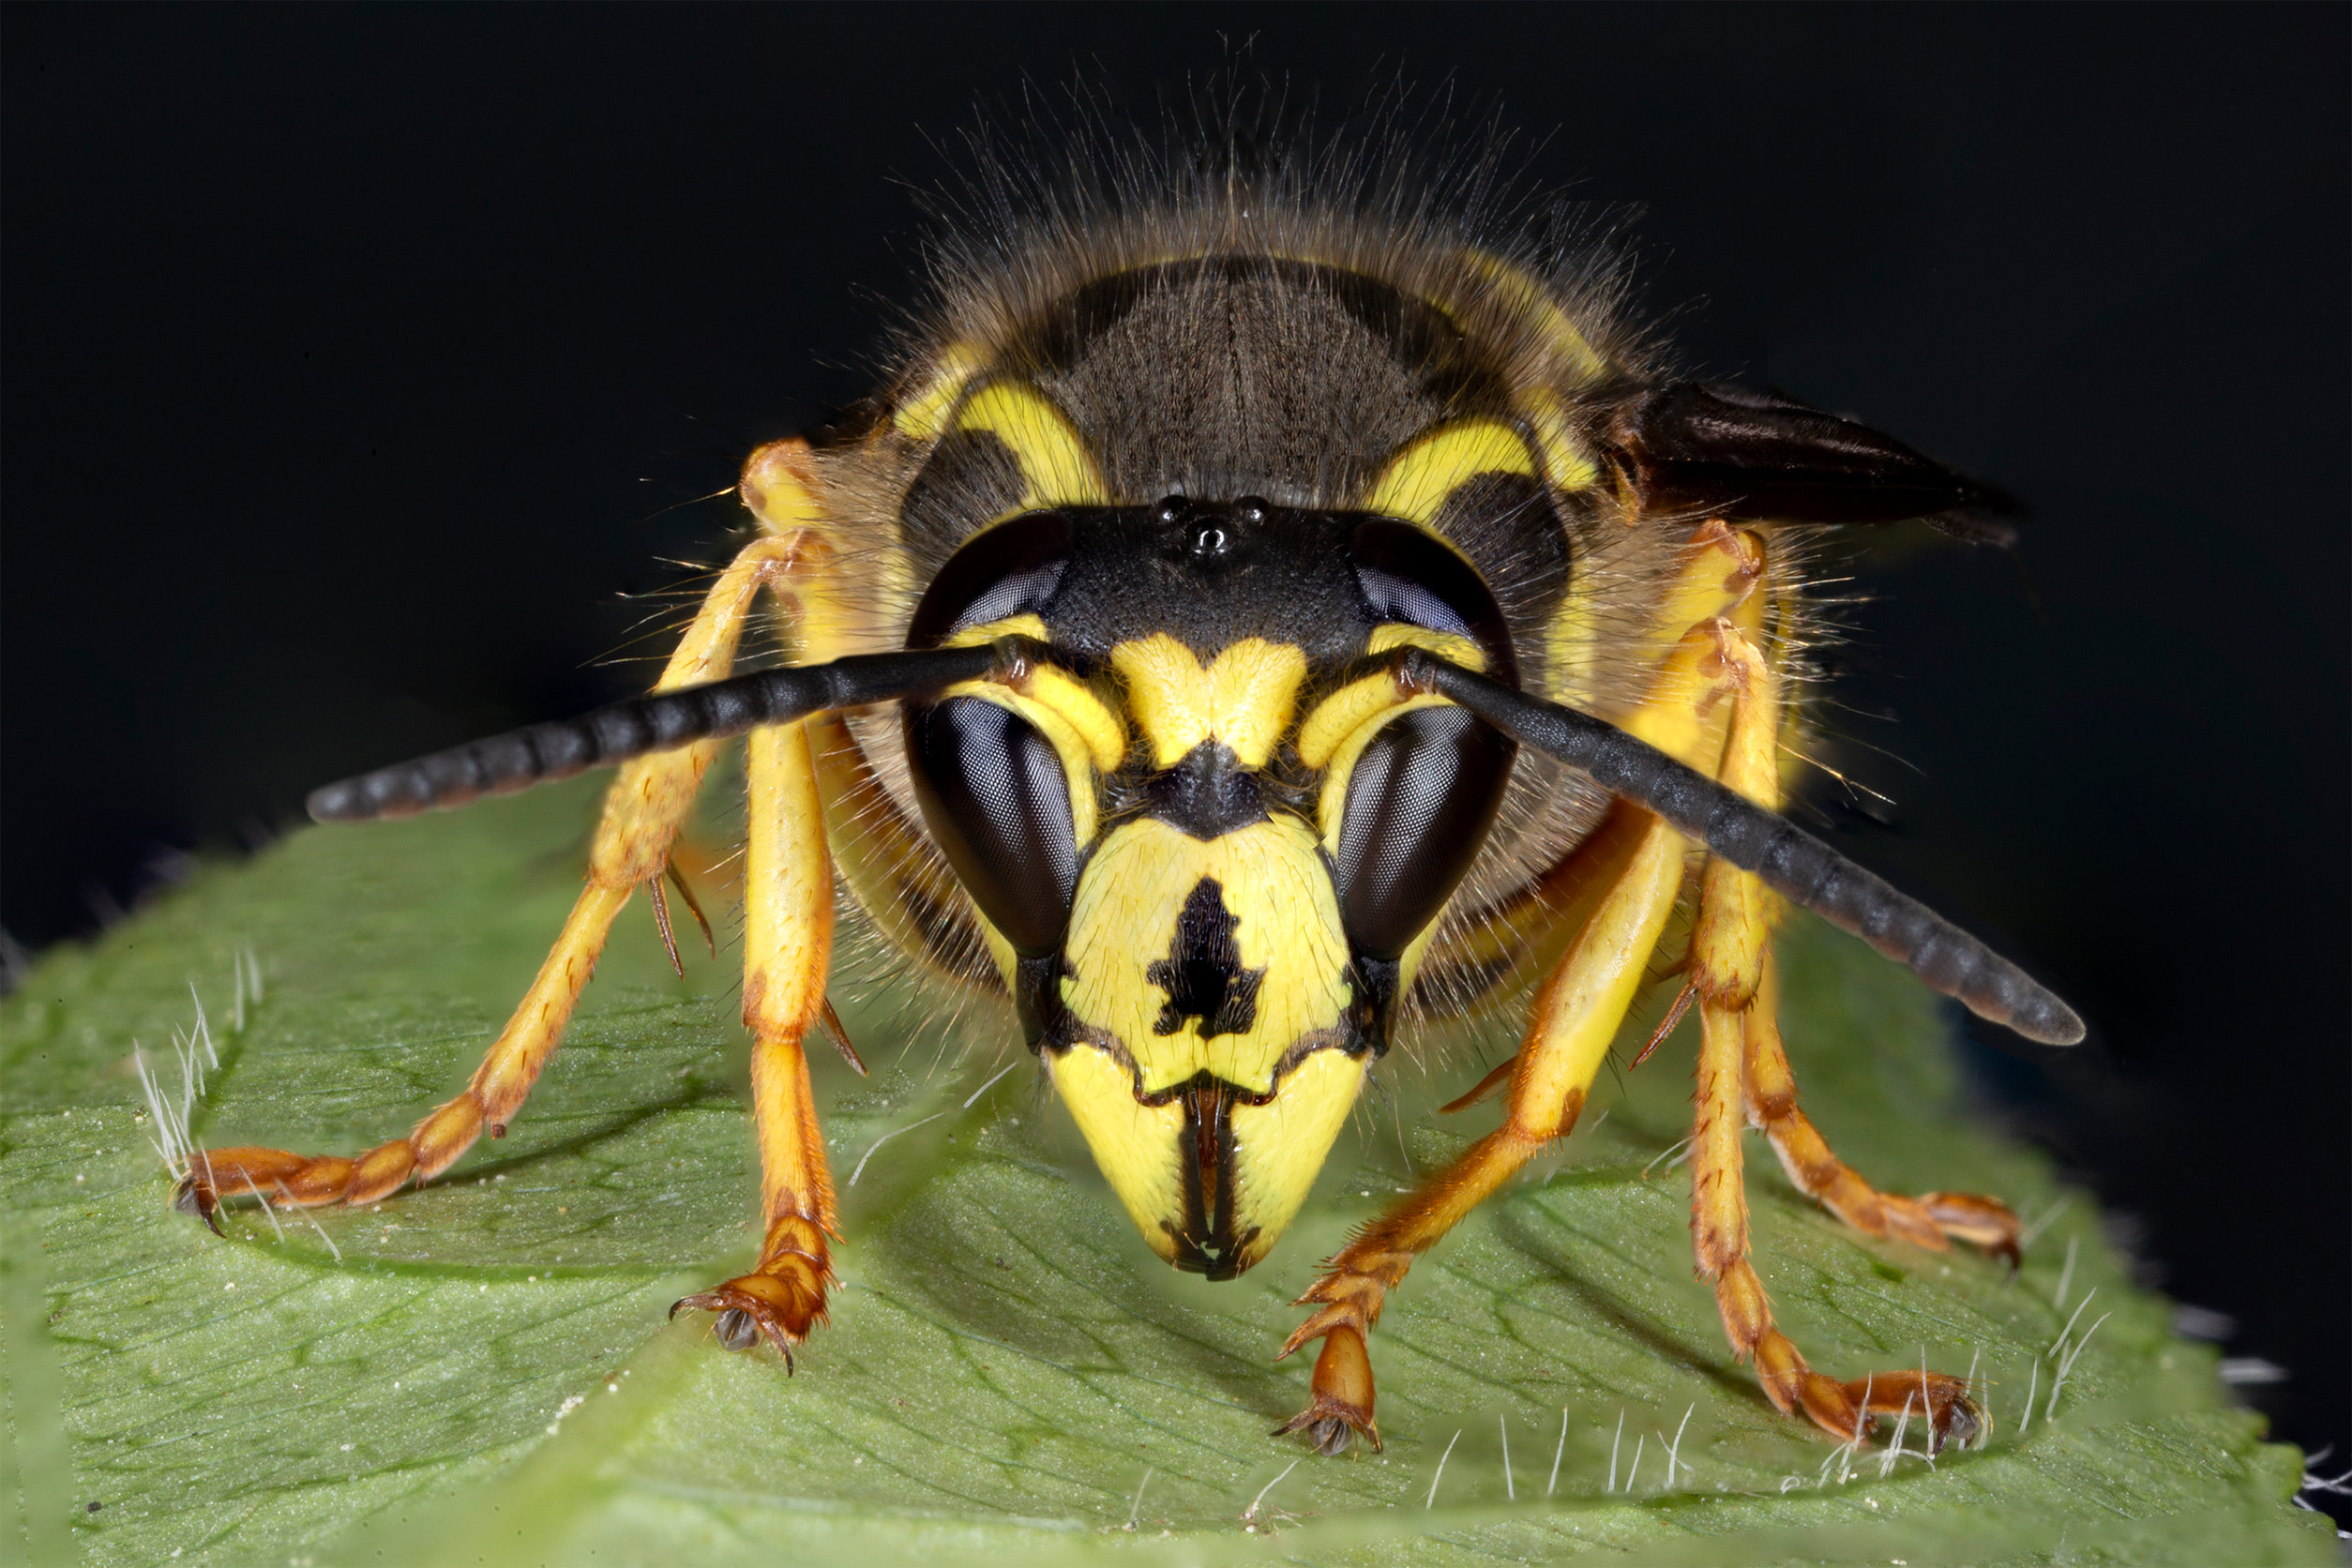 Closeup of a Yellowjacket perched on a leaf